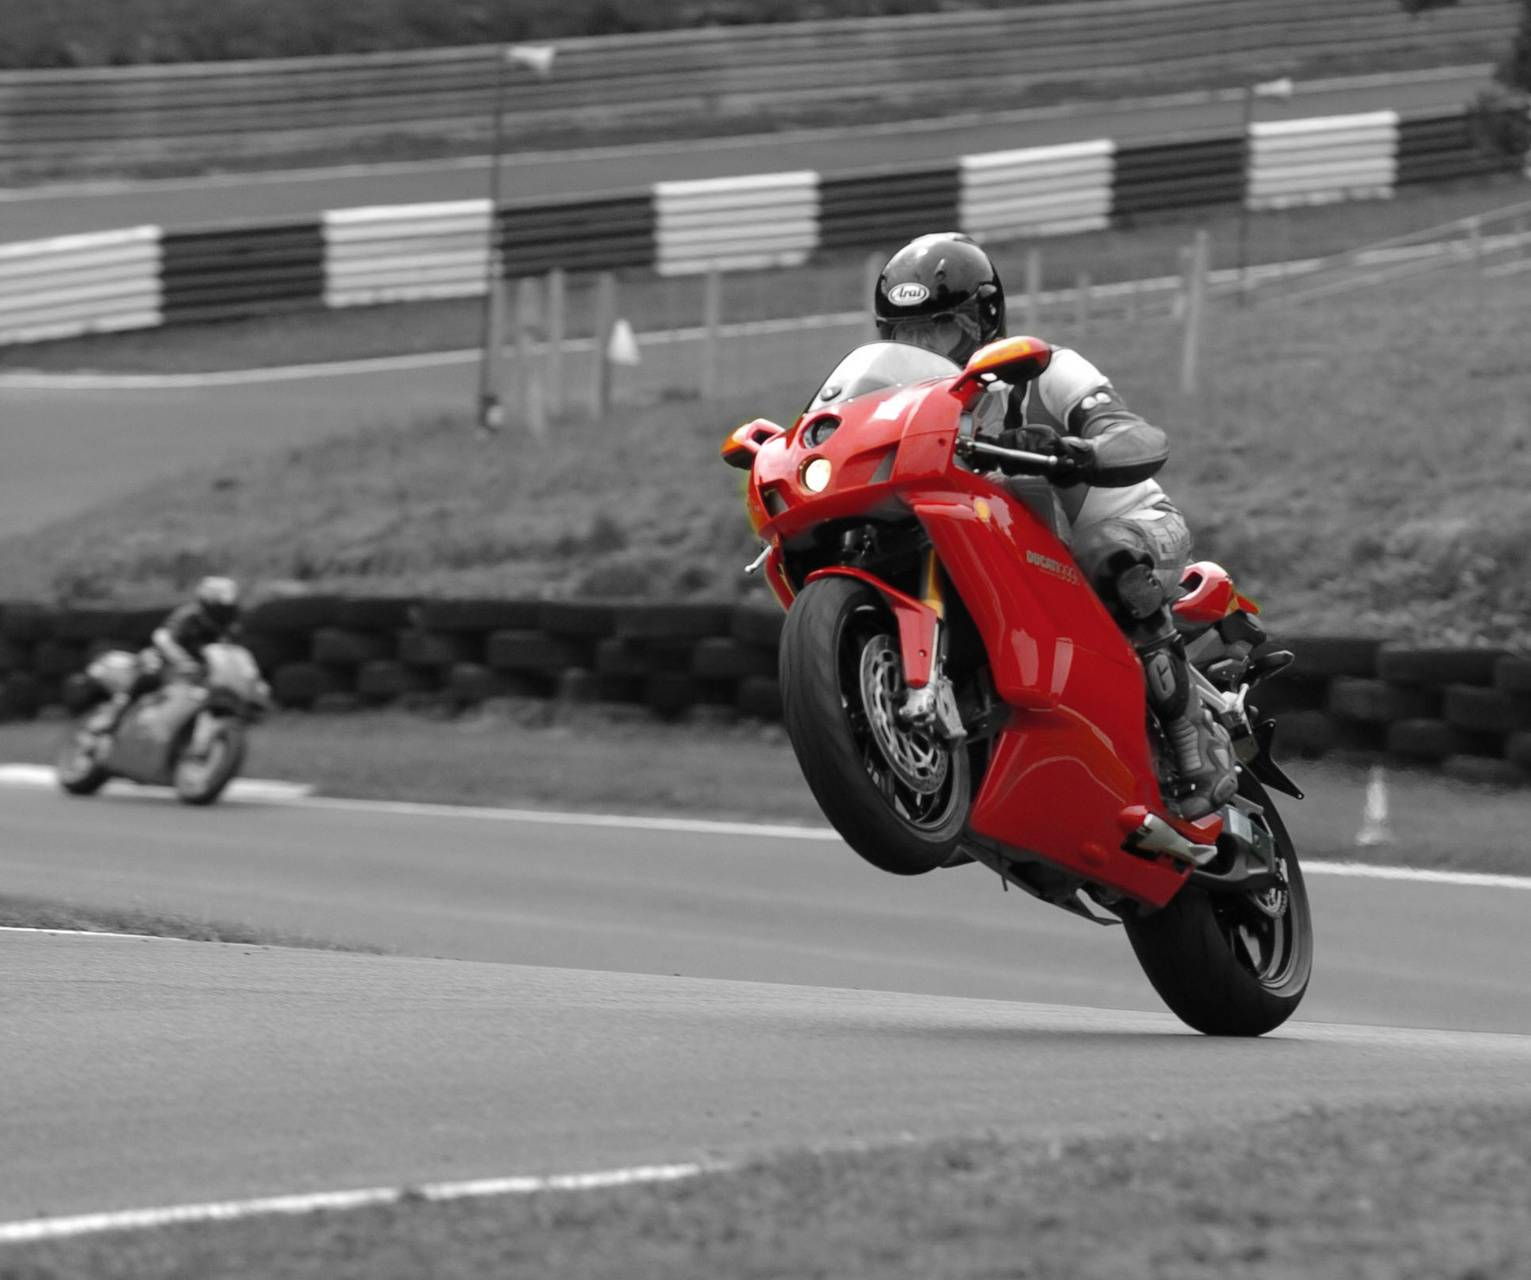 Ducati 999 wallpaper by GiNiou - 59 - Free on ZEDGE™